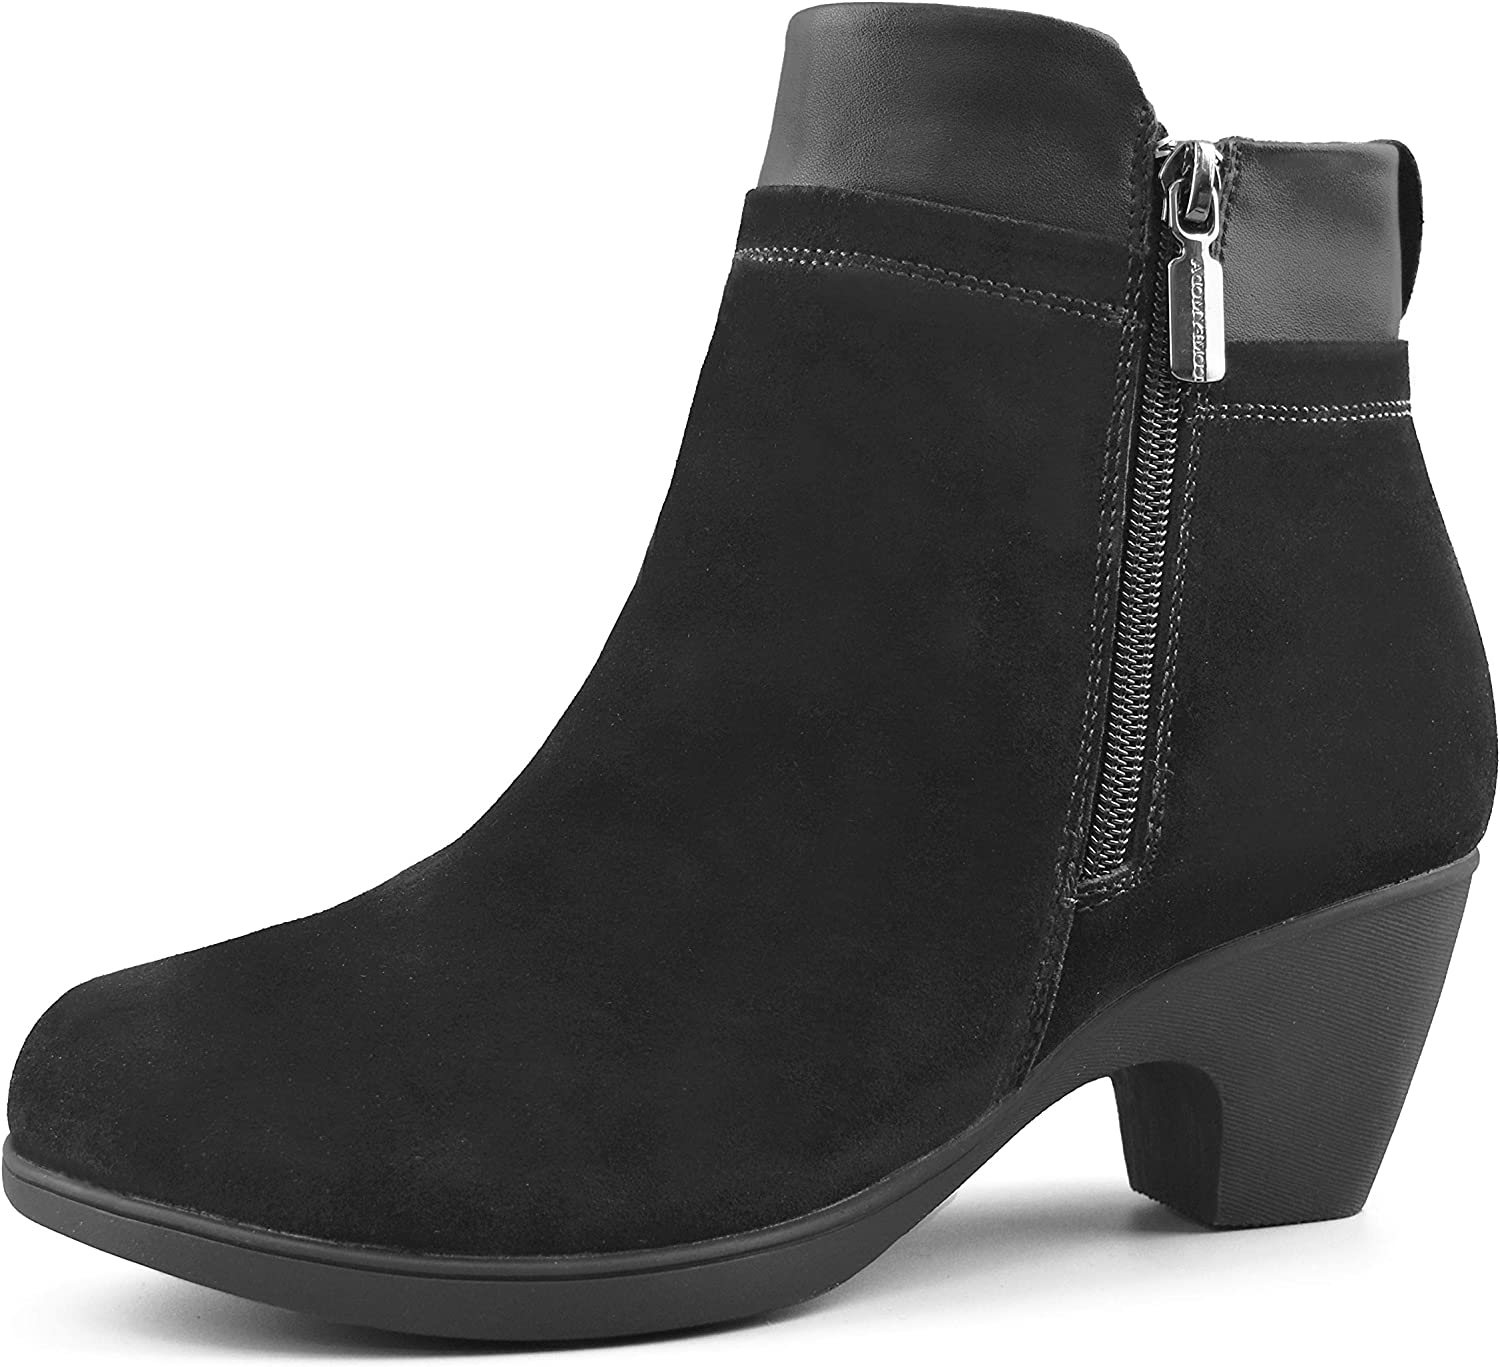 Comfy Moda Women's Winter Boots | Leather | Fur Lined | Dressy Ankle - Office